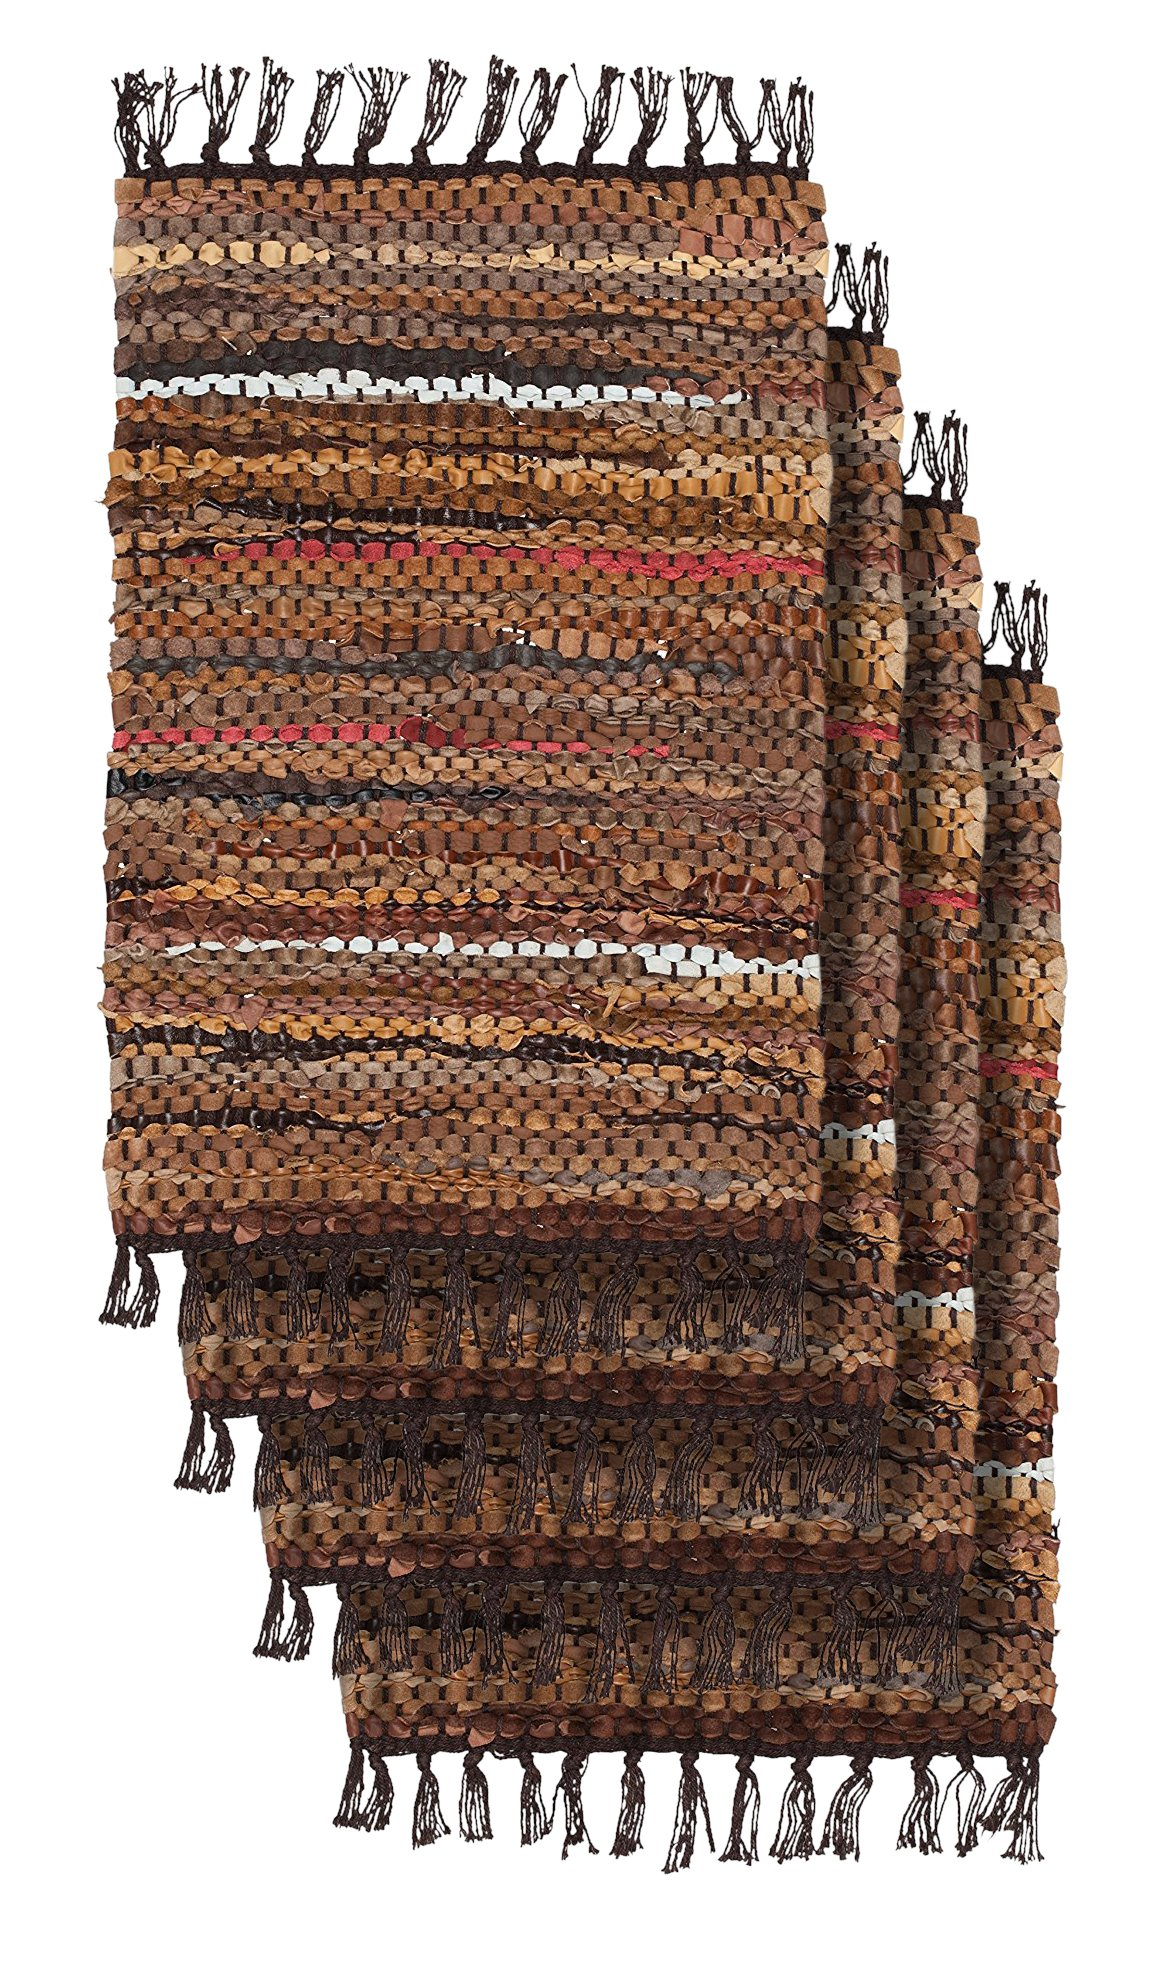 HF by LT Tucson Leather Placemats, 13'' x 19'', Set of 4, Handwoven Recycled Leather and Soft Cotton, Brown